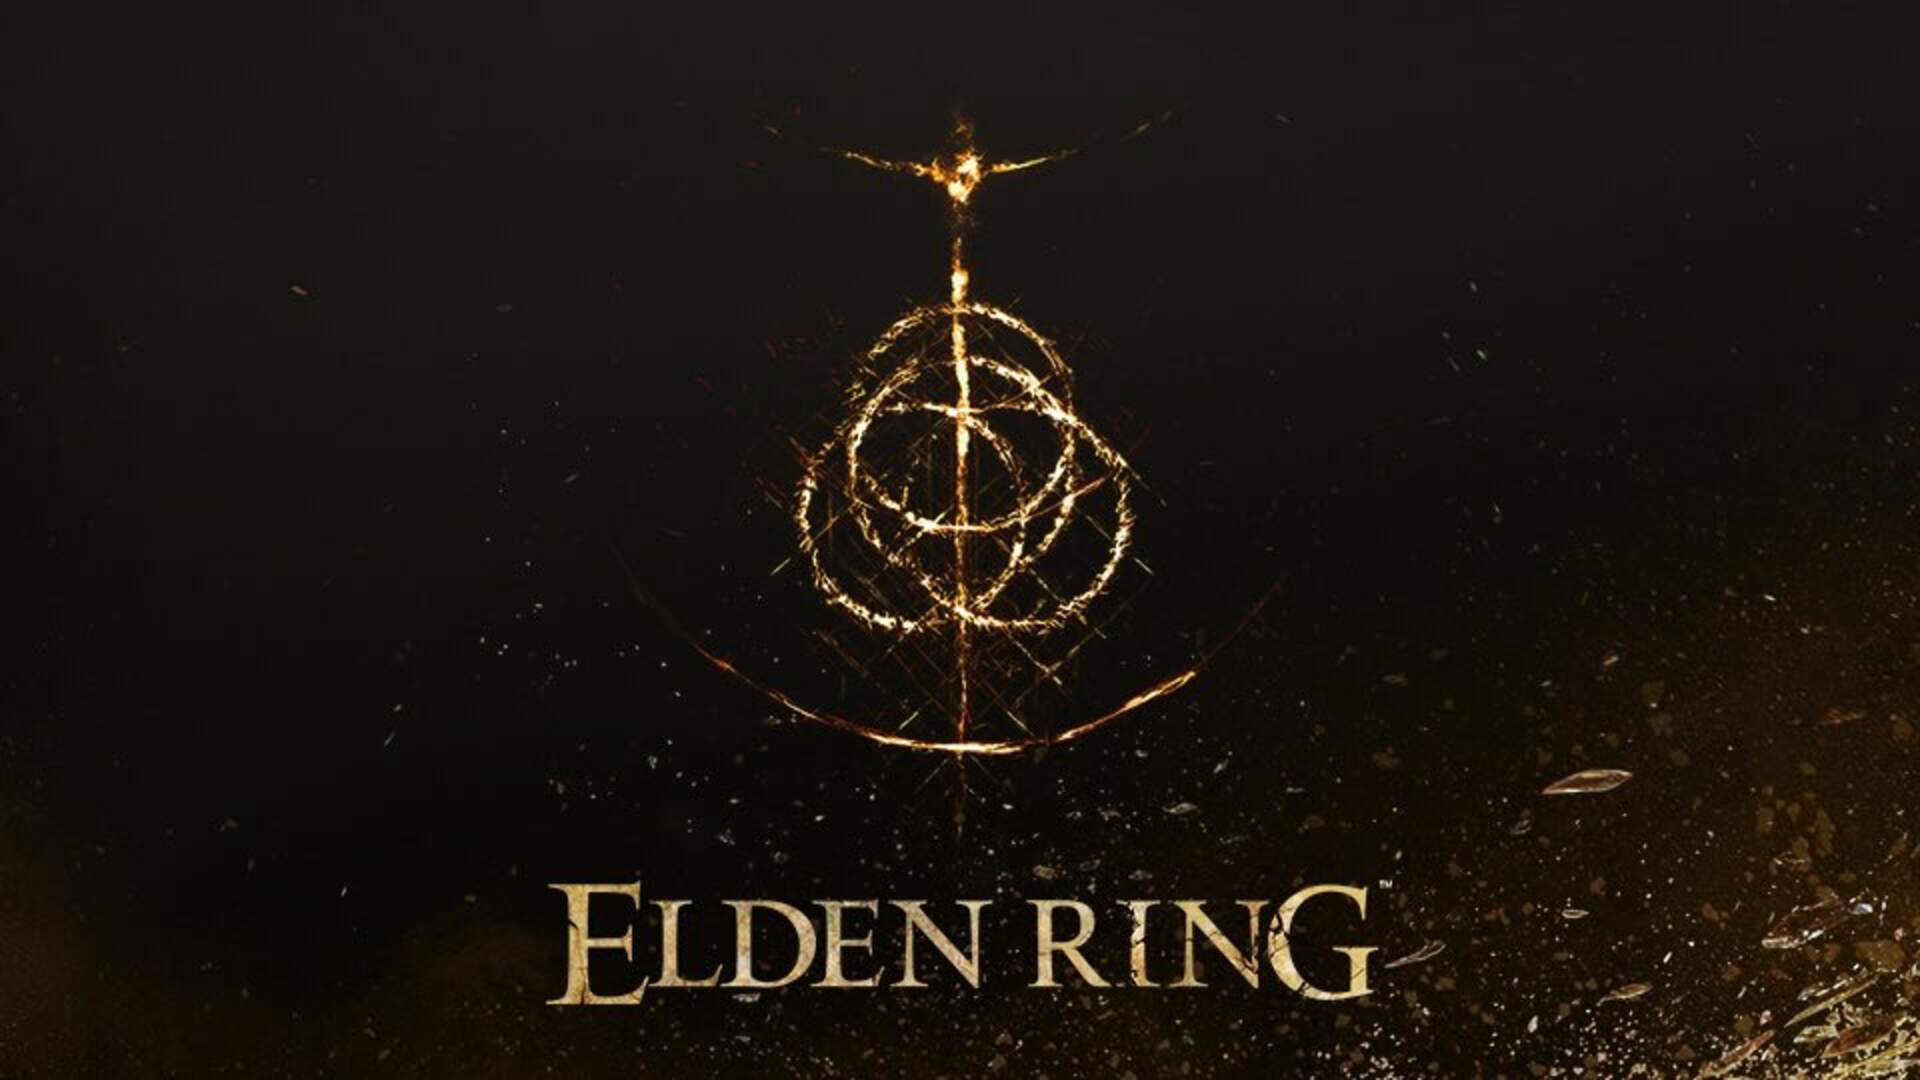 Elden Ring Release Date, Trailer, Gameplay Details - Everything We Know